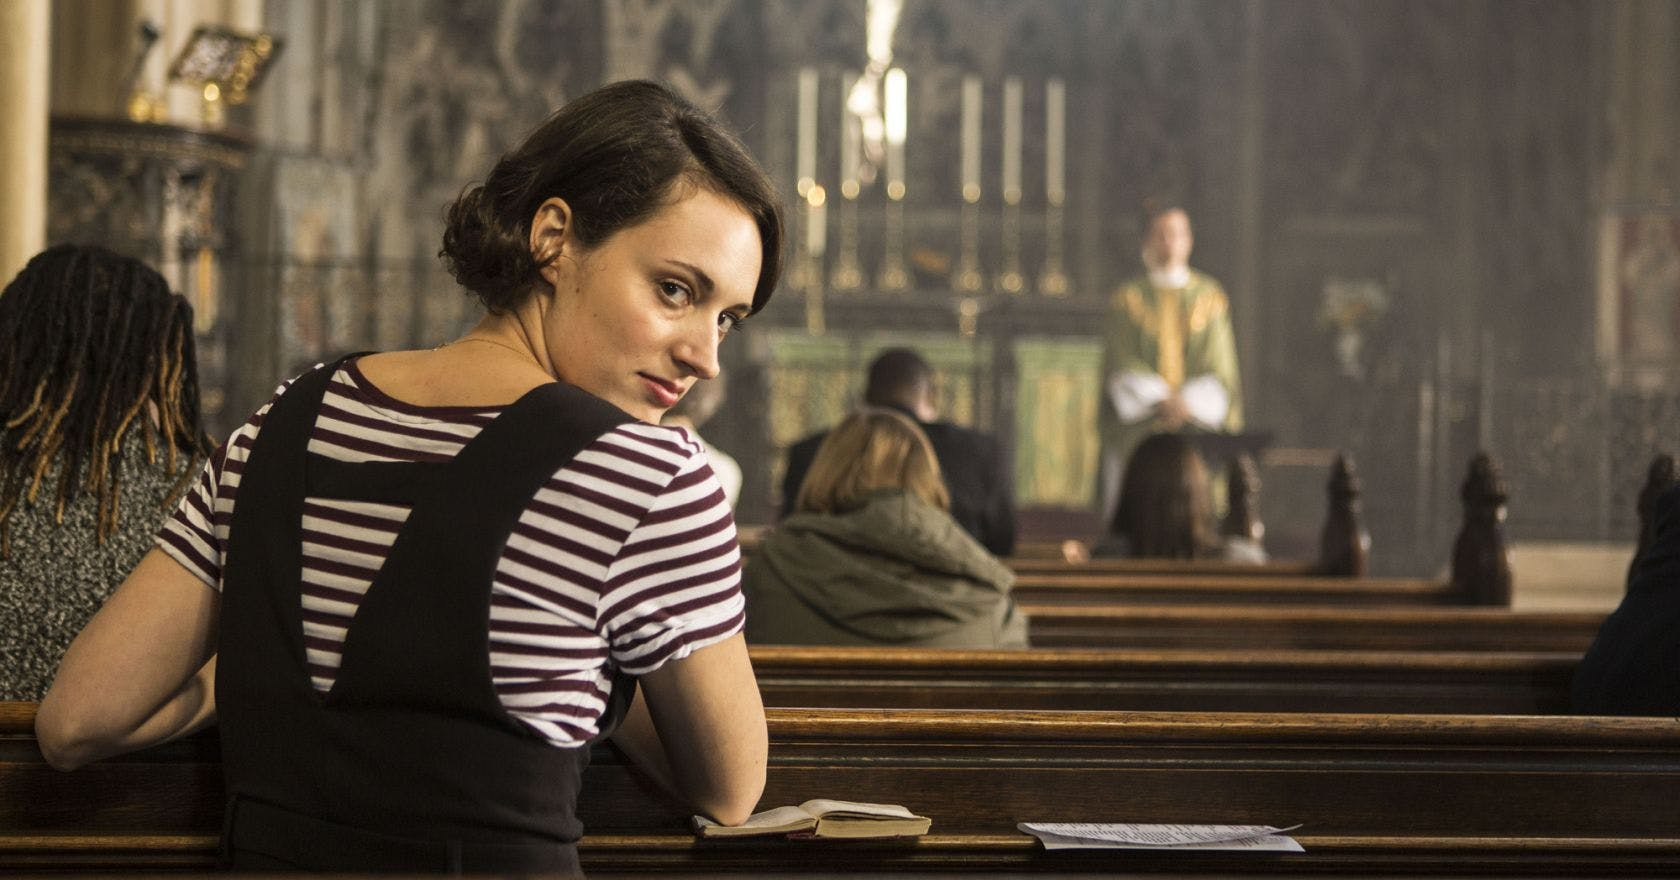 Phoebe Waller-Bridge in 'Fleabag' - Amazon Studios